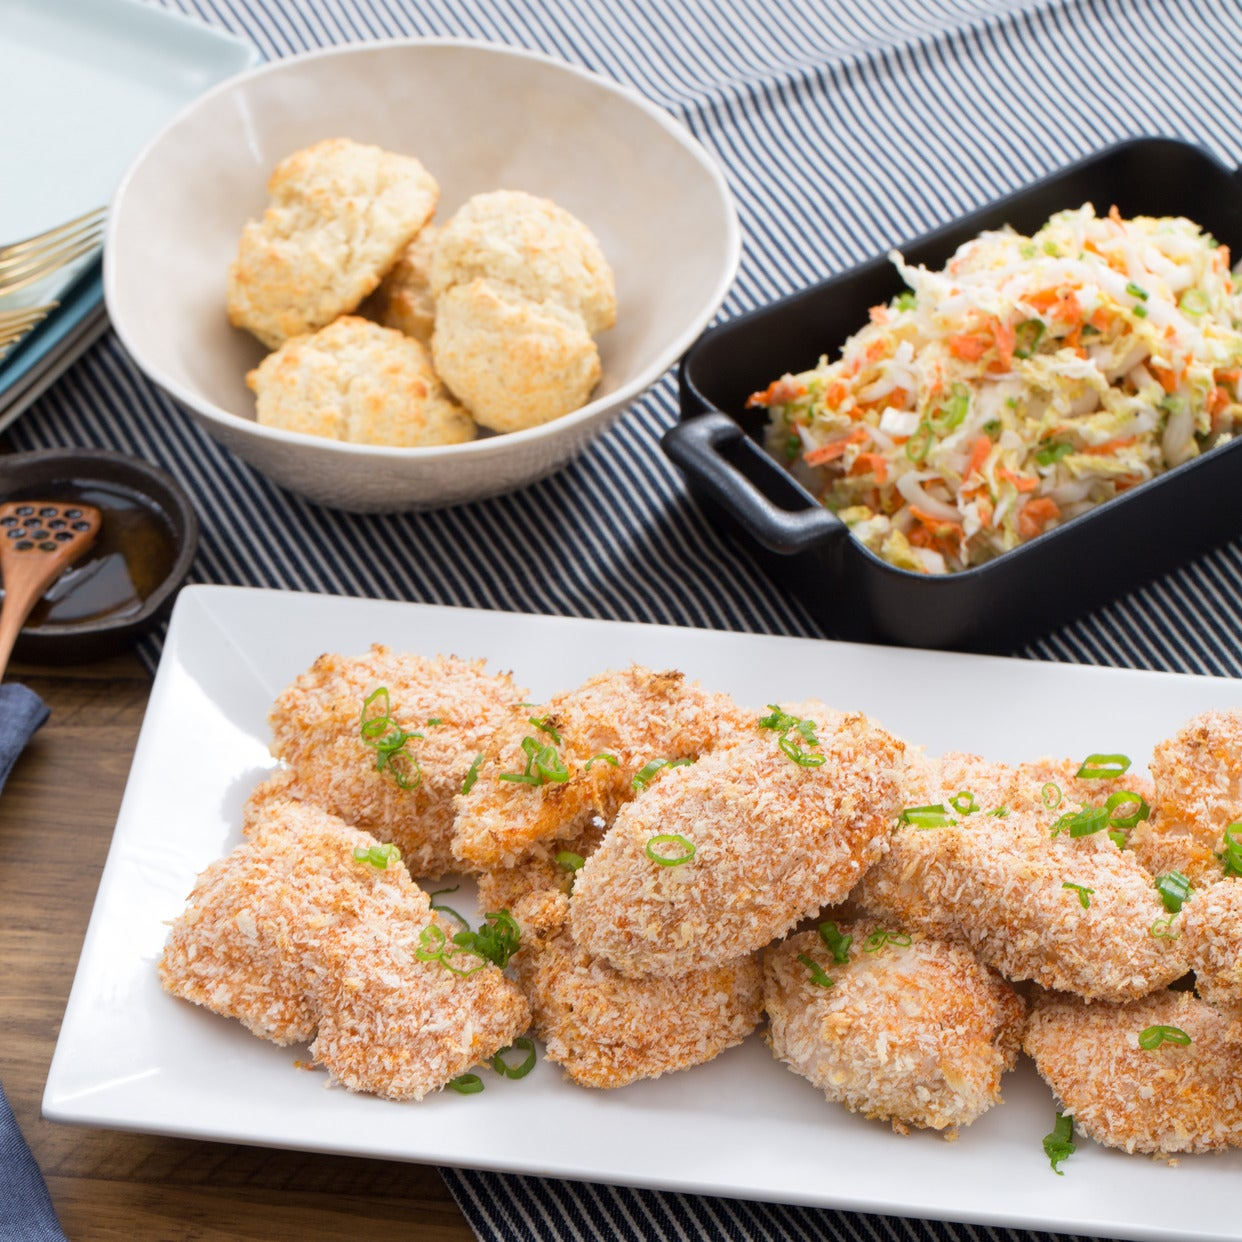 Oven-Fried Chicken with Coleslaw & Buttermilk Biscuits